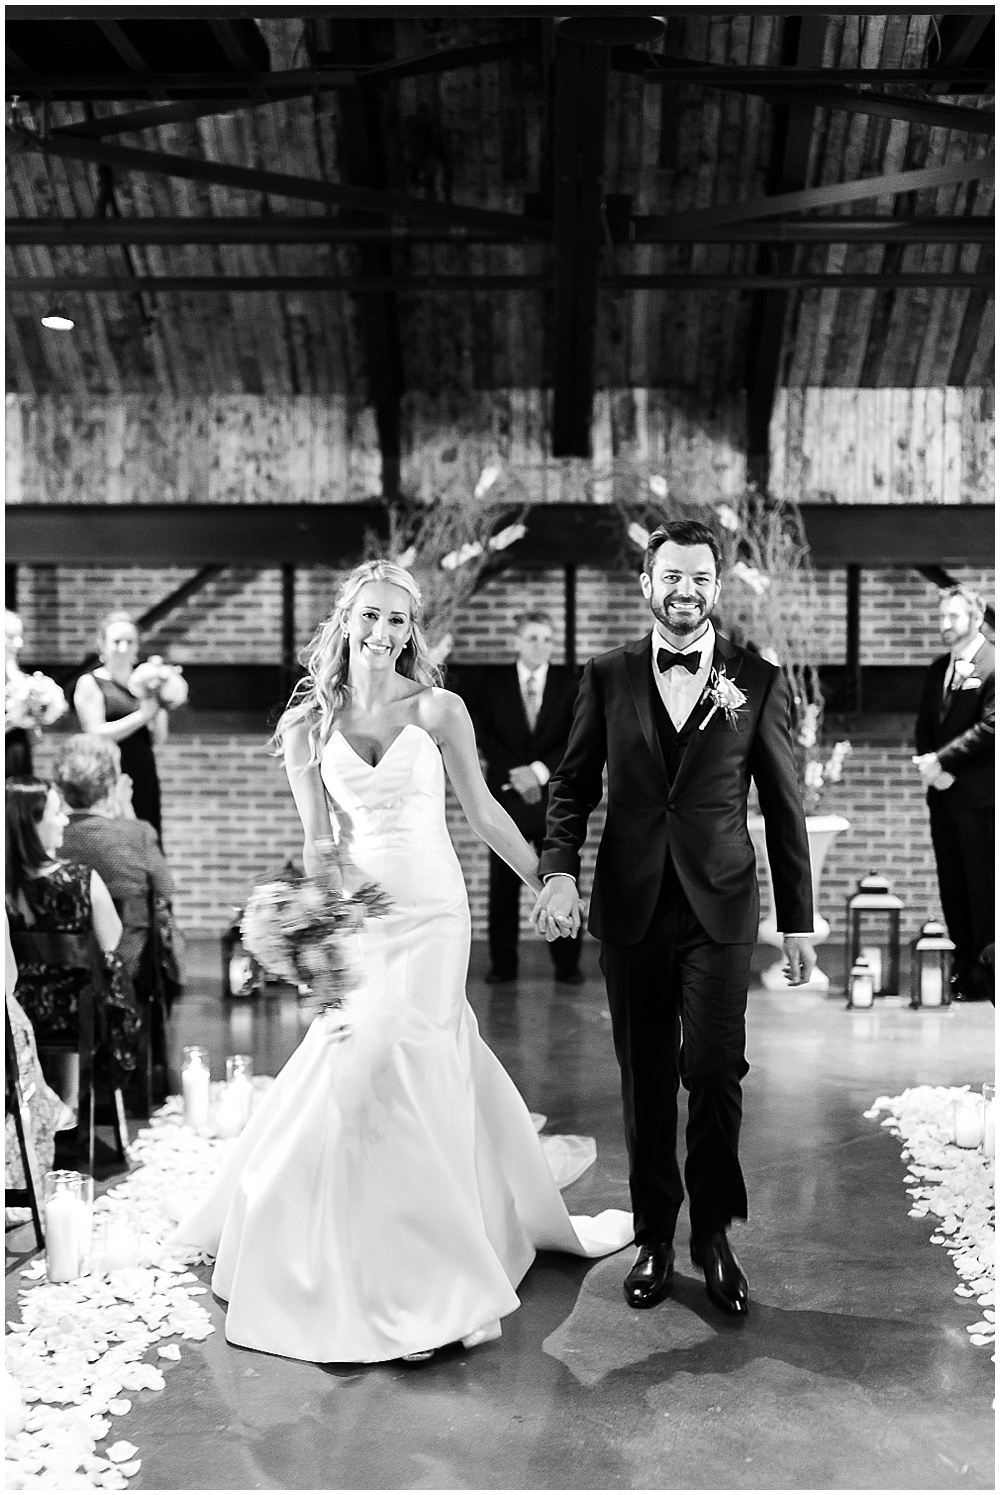 Bride and groom exit | Canal 337 wedding by Jenny Haas Photography & Jessica Dum Wedding Coordination